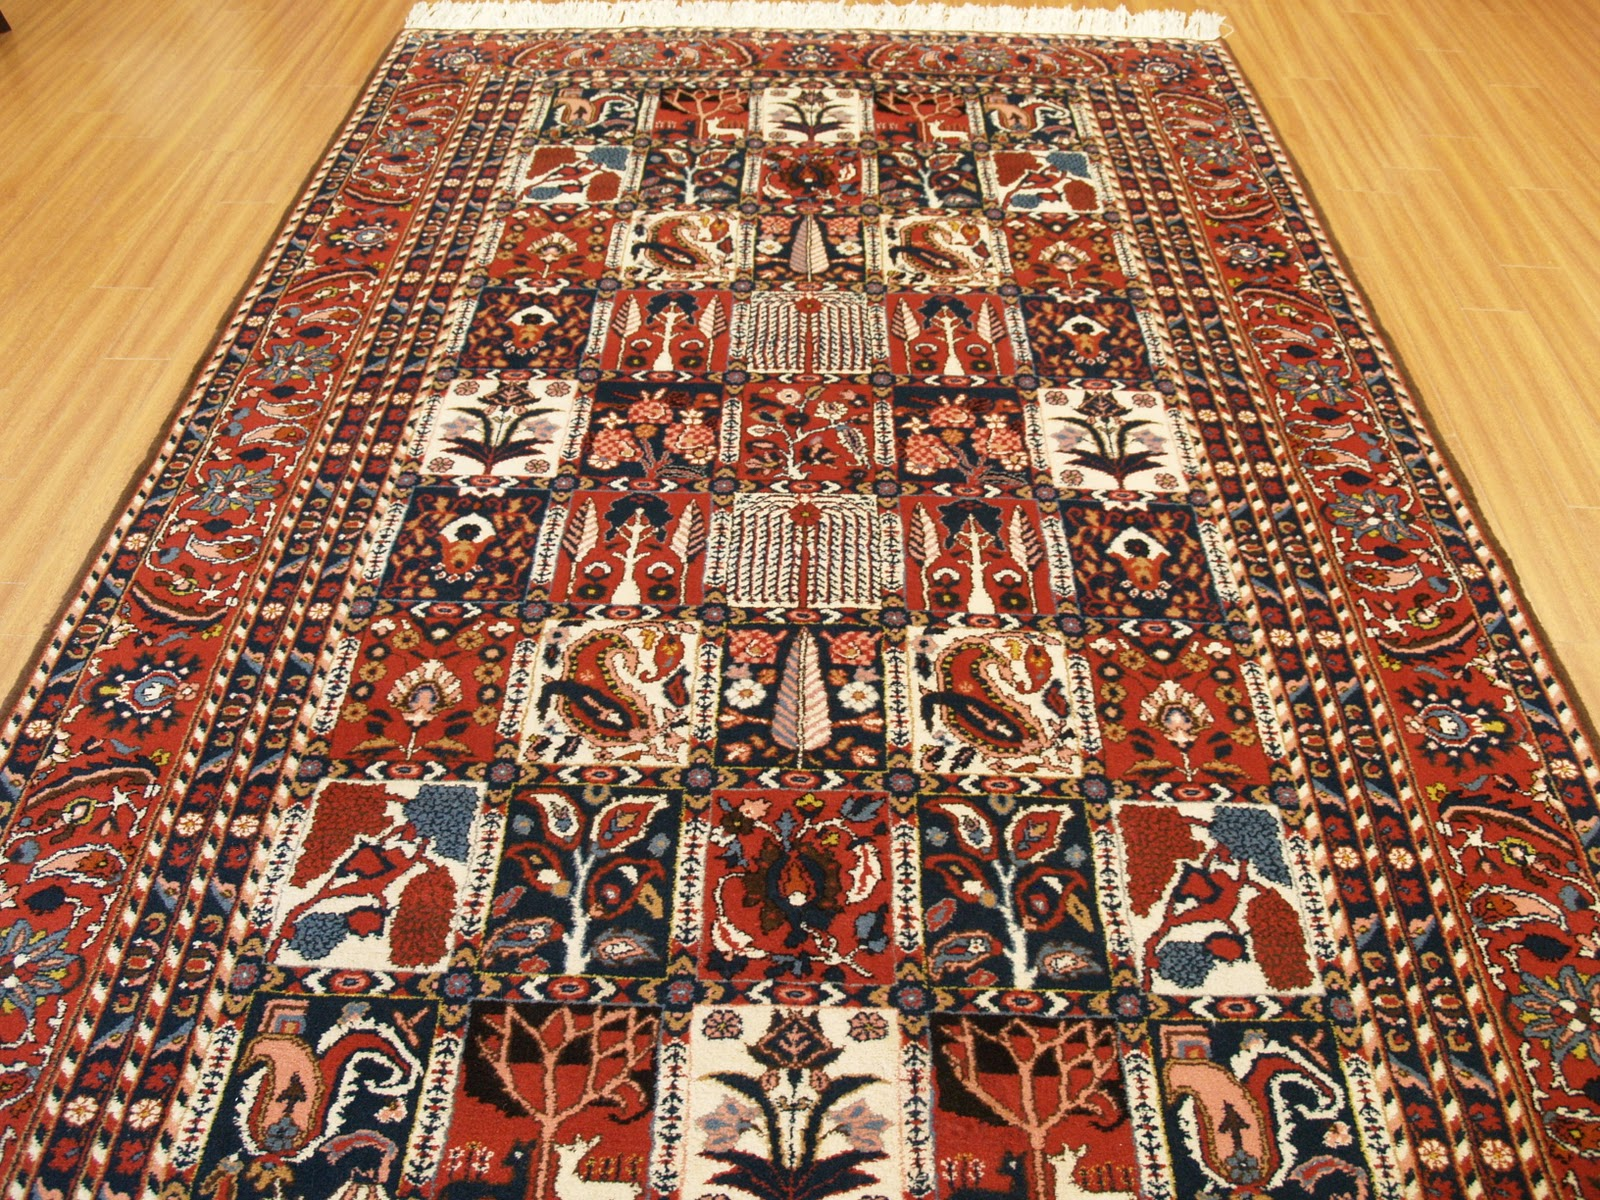 rug master oriental rugs oriental carpets designs - Carpets With Designs